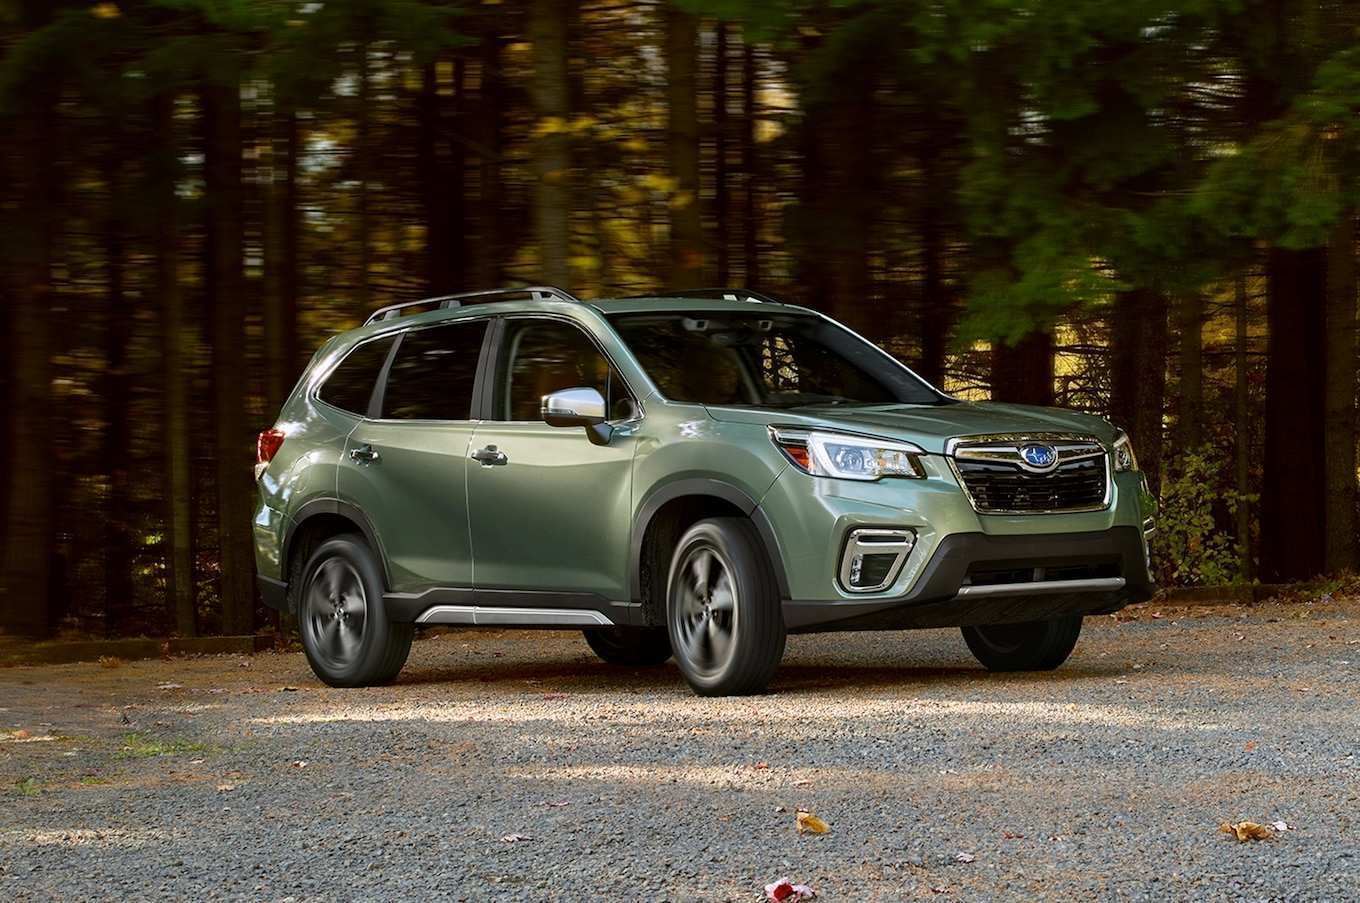 56 All New The New Subaru 2019 Review Specs And Release Date Ratings with The New Subaru 2019 Review Specs And Release Date